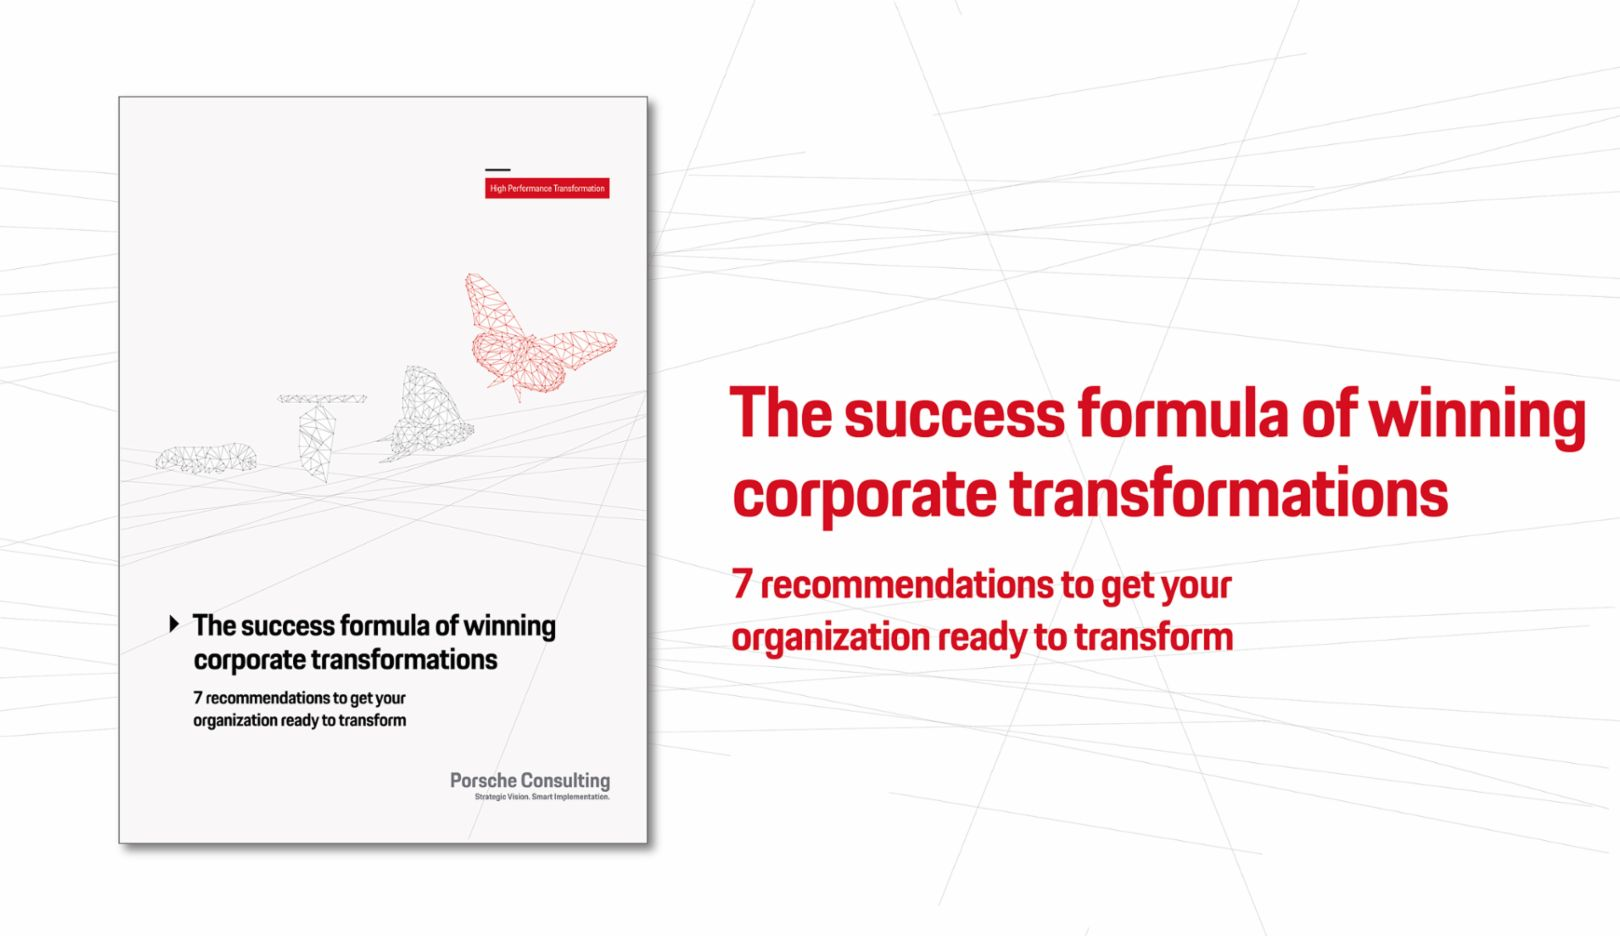 The success formula of winning corporate transformations, 2018, Porsche Consulting GmbH